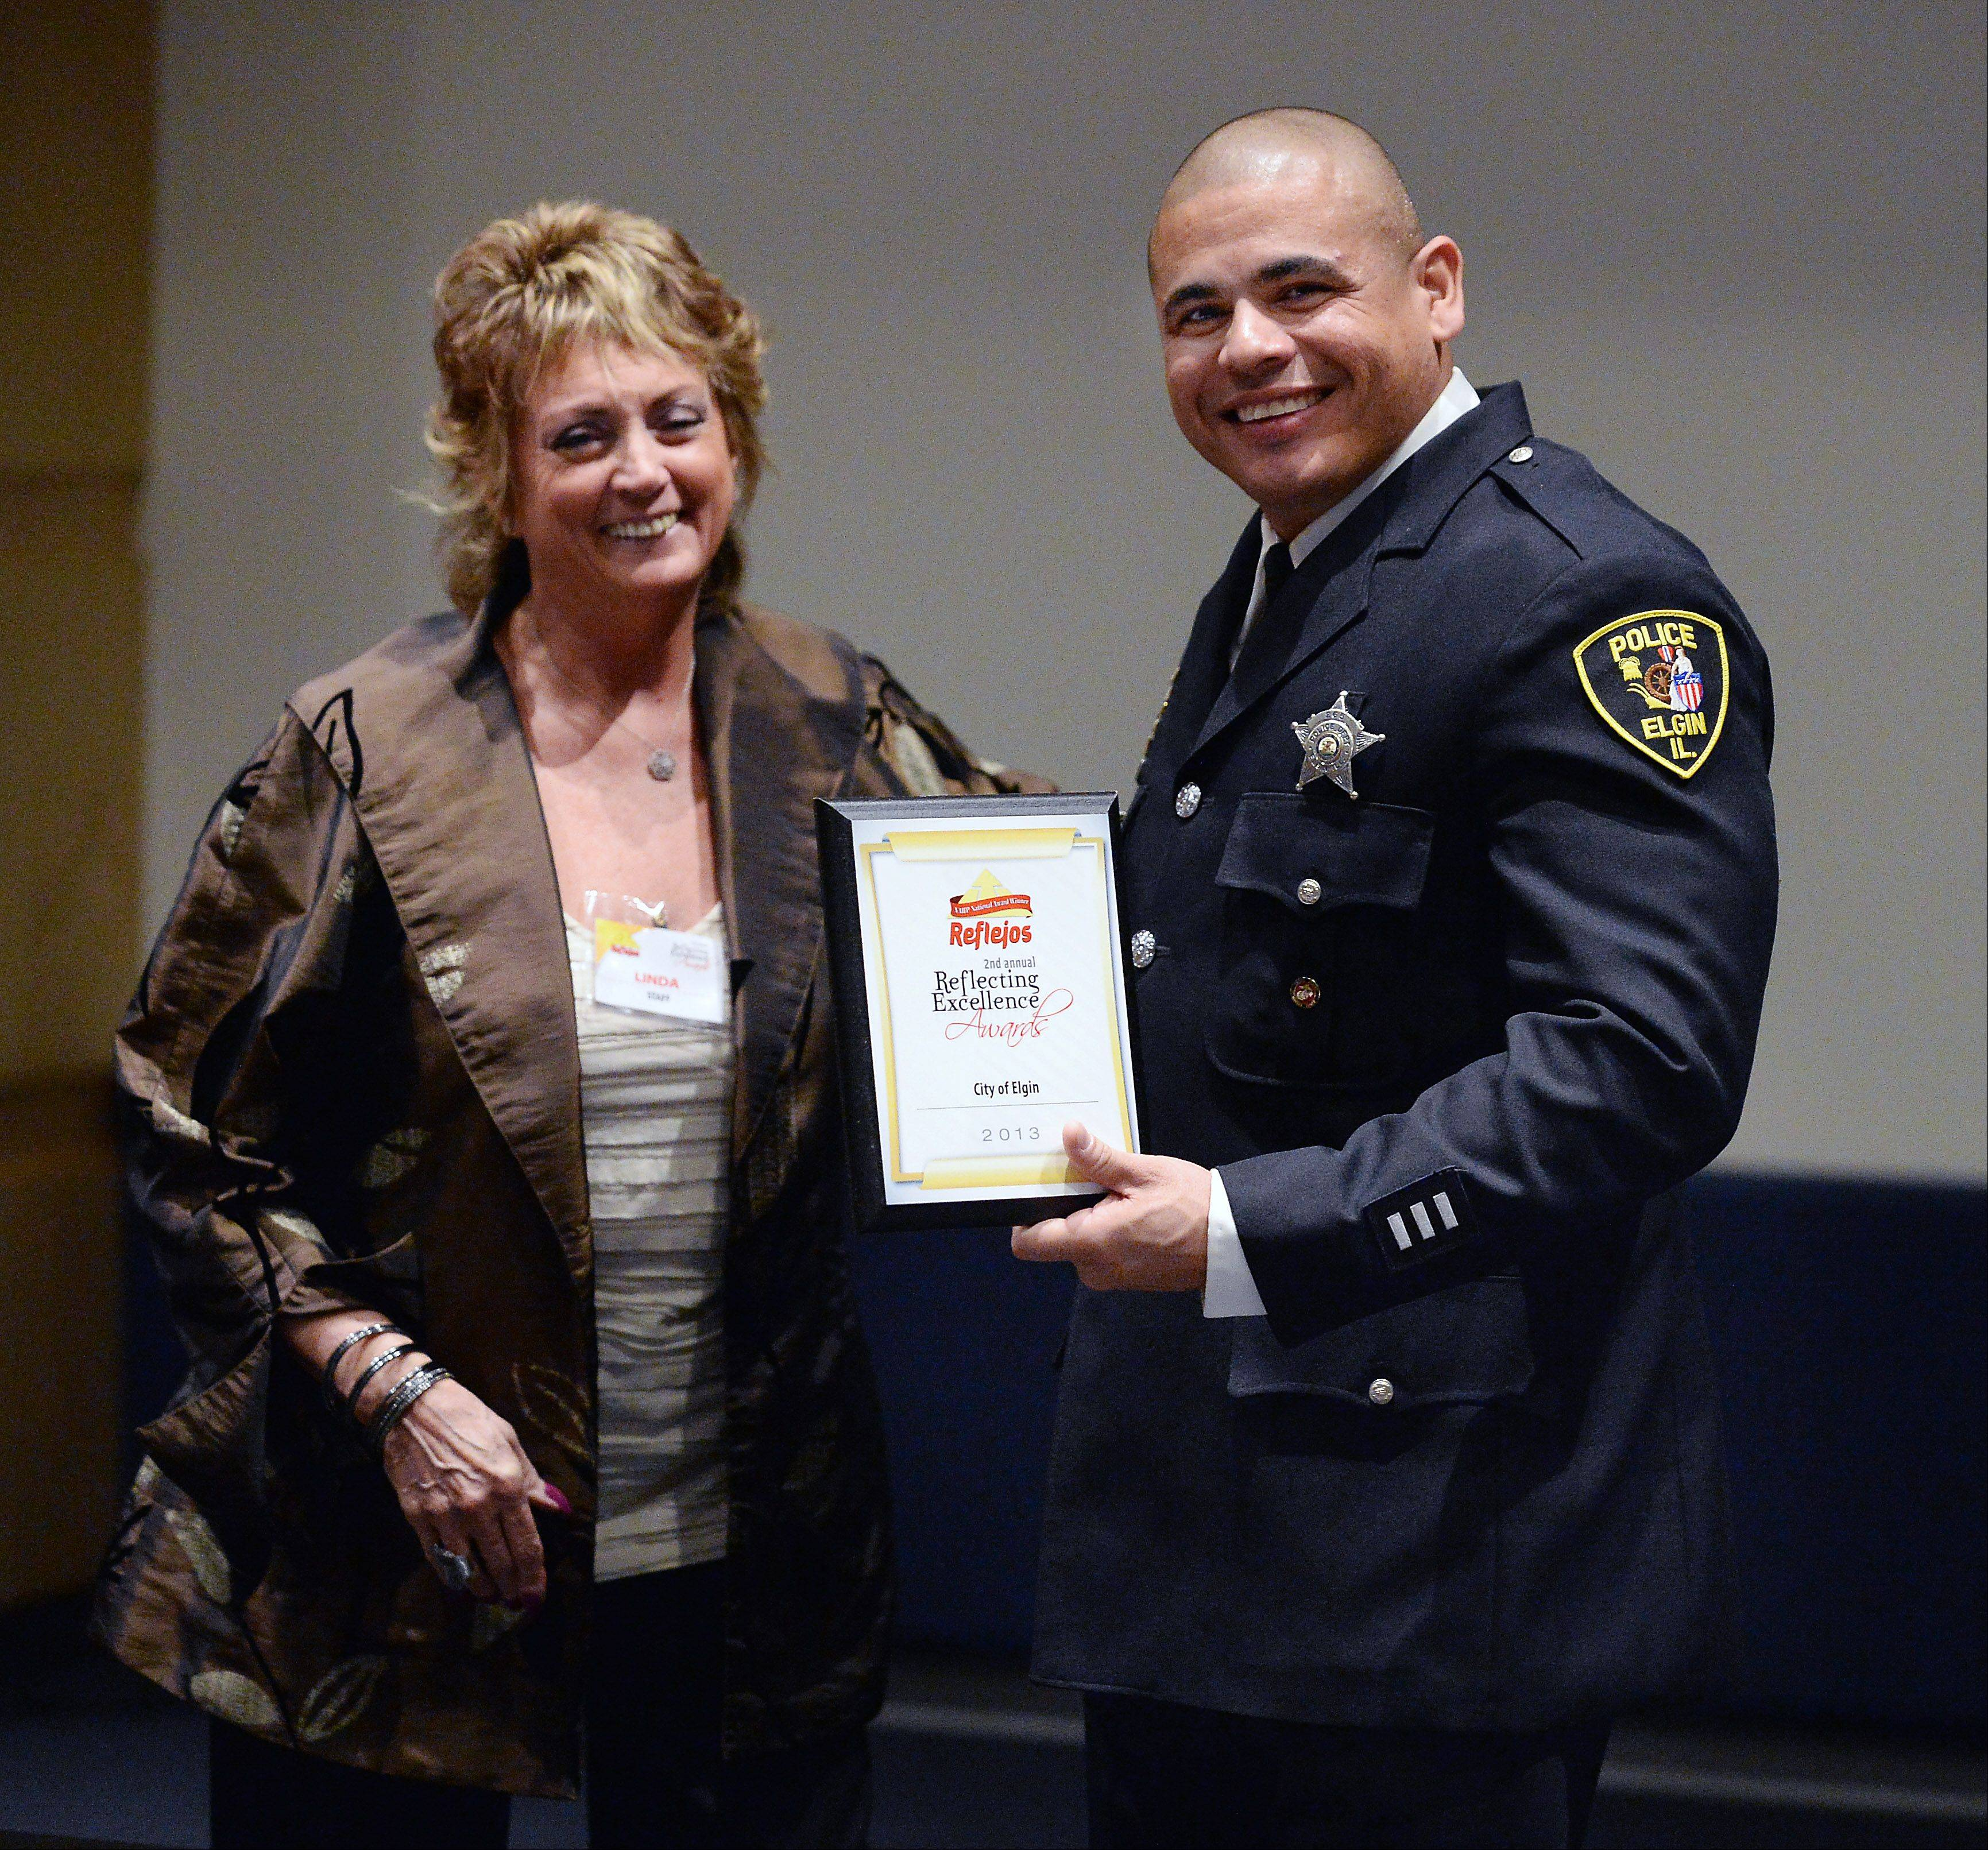 Linda Siete, sales operation manager at Reflejos, presents Officer Eric Echevarria of the Elgin Police Department with an award at the Daily Herald Reflejos Reflecting Excellence Awards event at Harper College on Thursday.